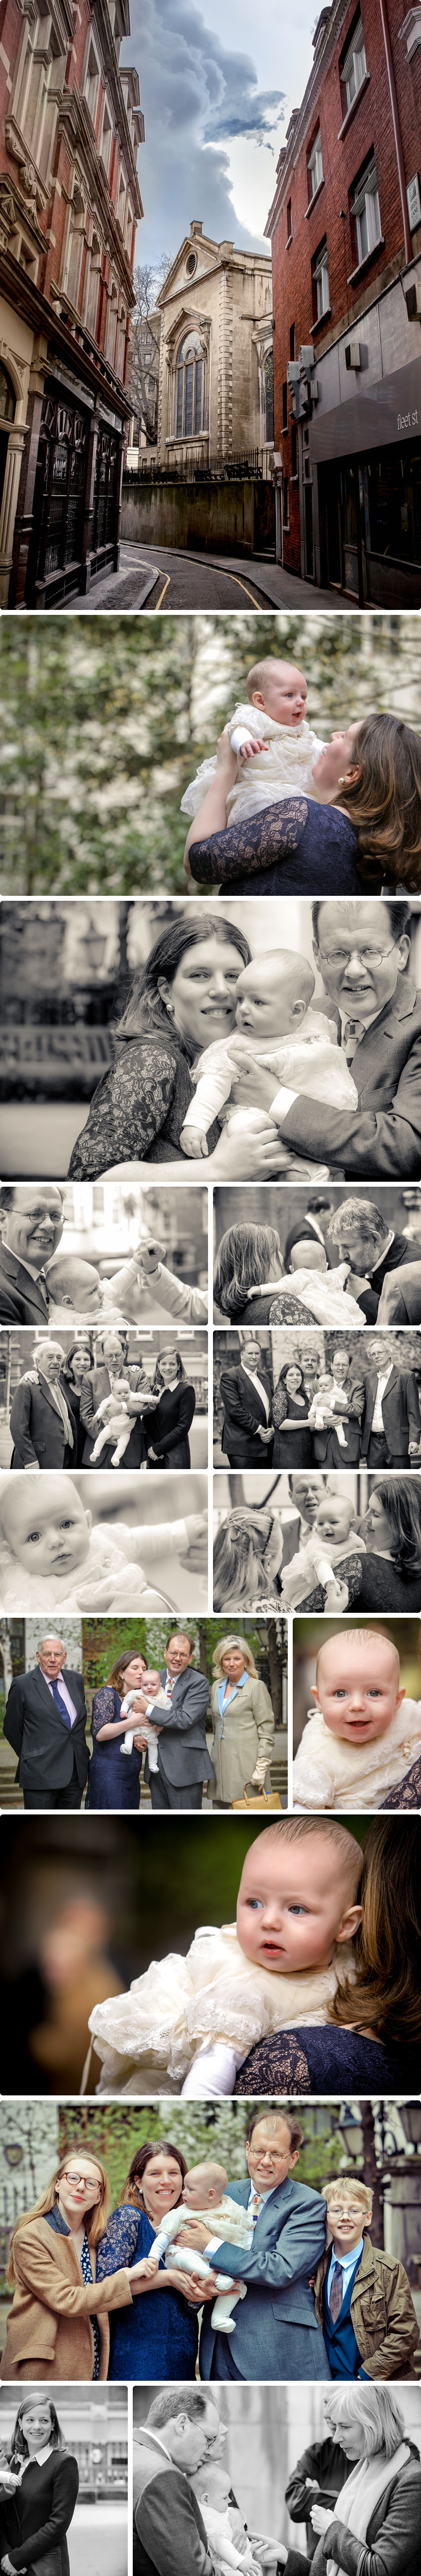 Outdoor snapshots of little Jasper's family - Christening Photography in London 01